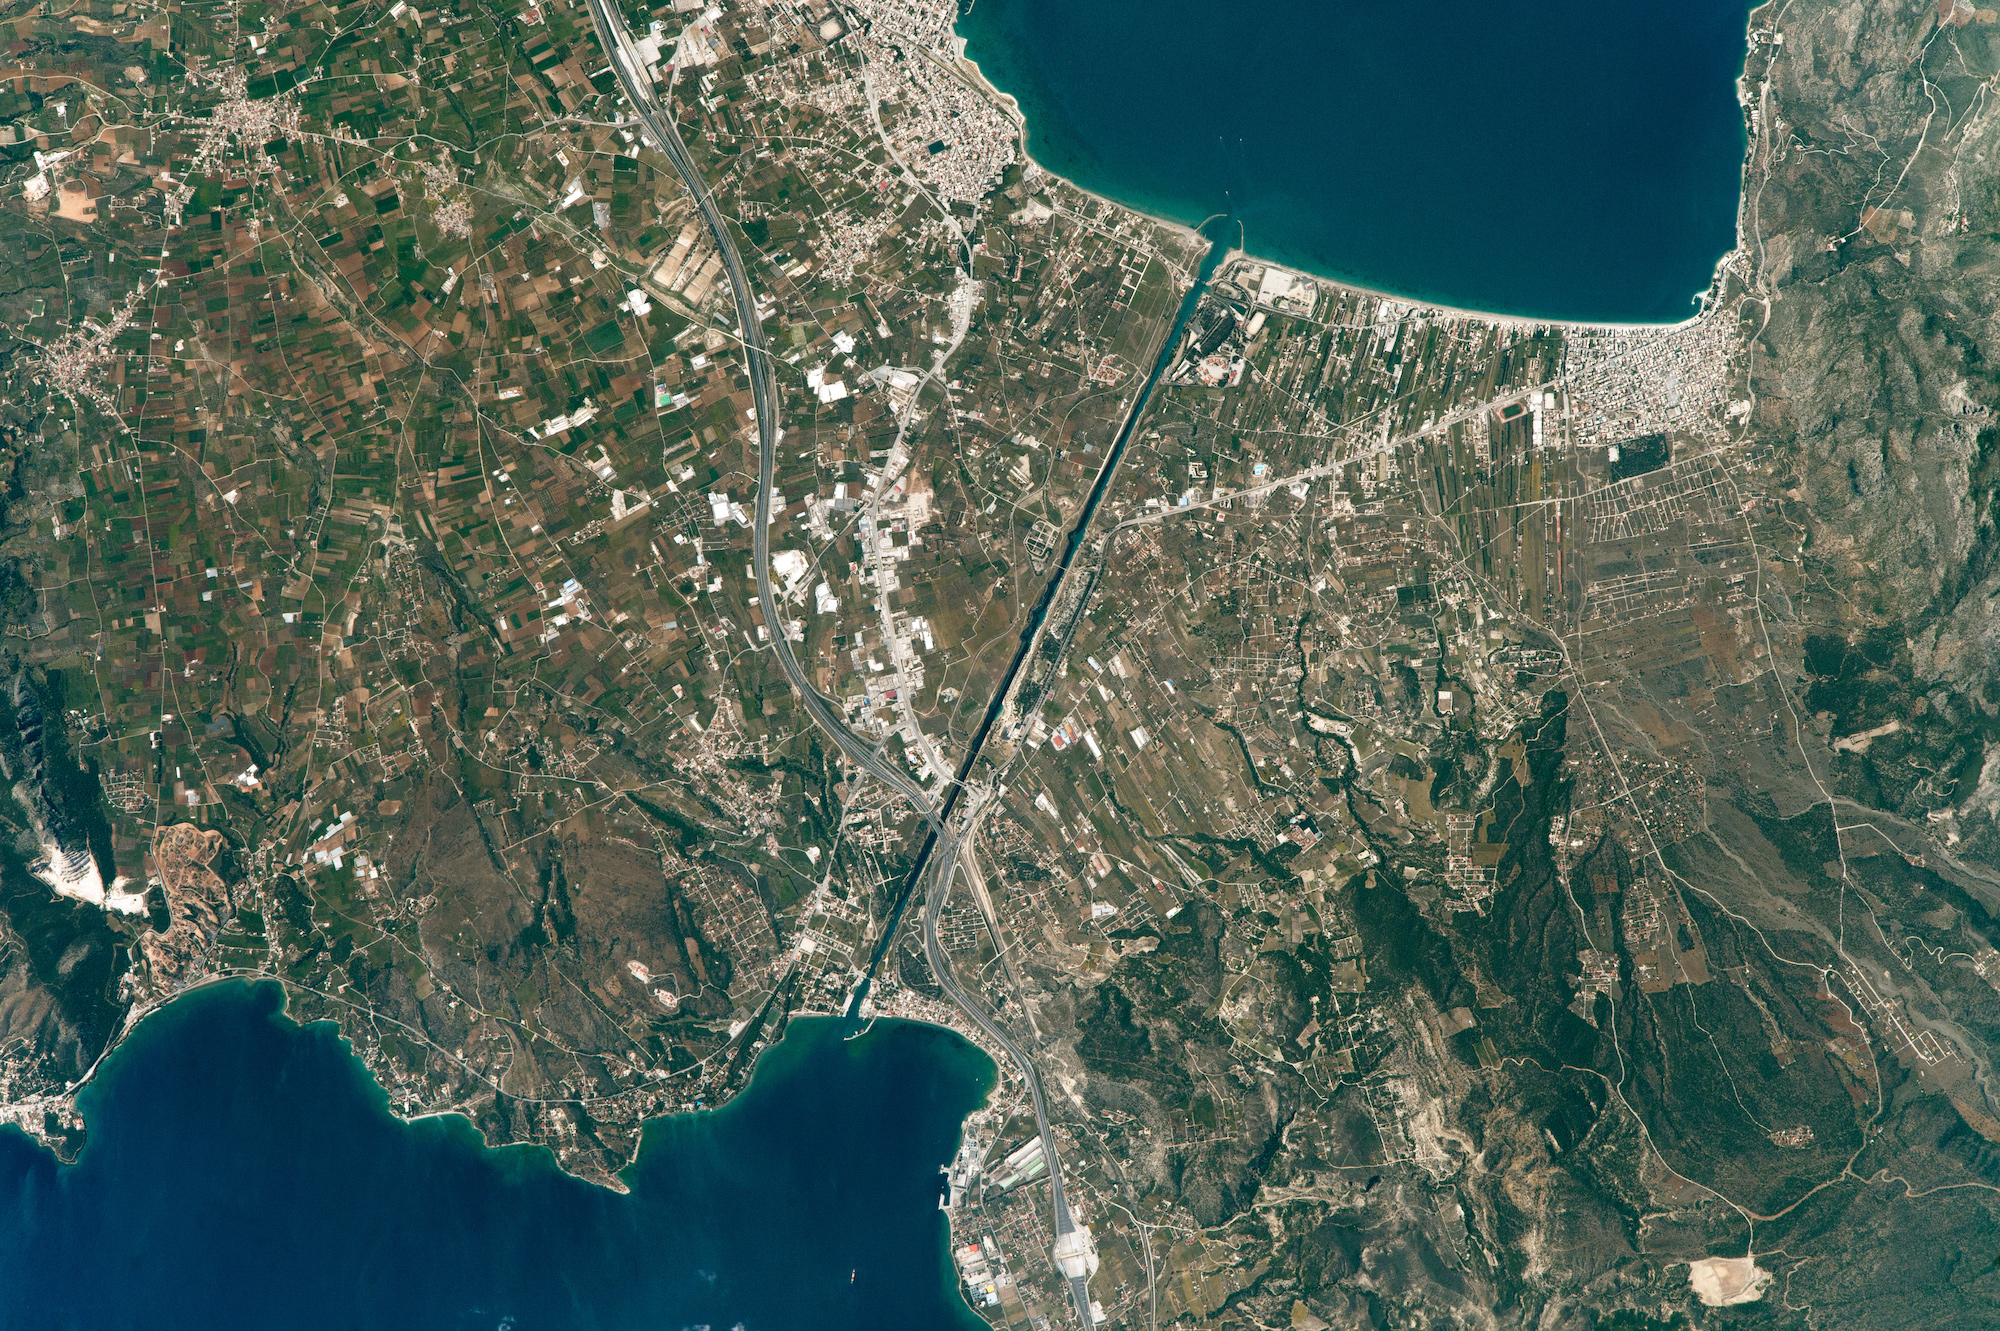 Today's Image of the Day comes thanks to the NASA Earth Observatory and features a look at the famous Corinth Canal in Greece